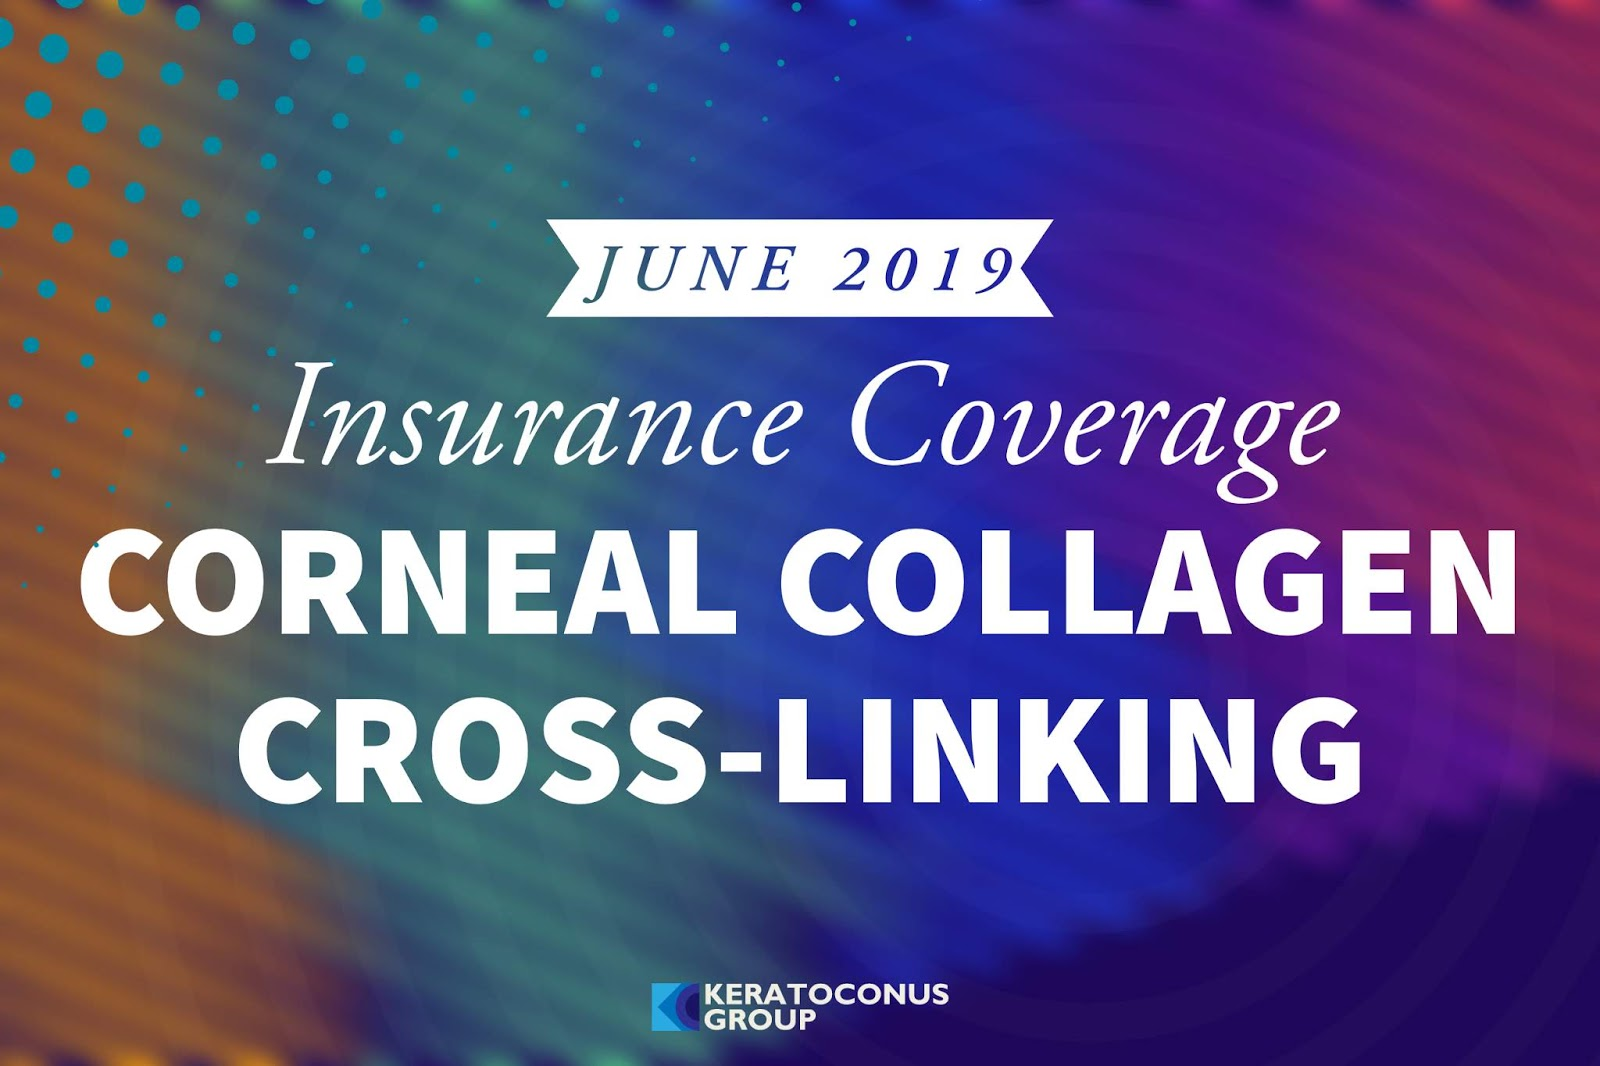 Insurance Coverage for Corneal Cross-Linking (2019